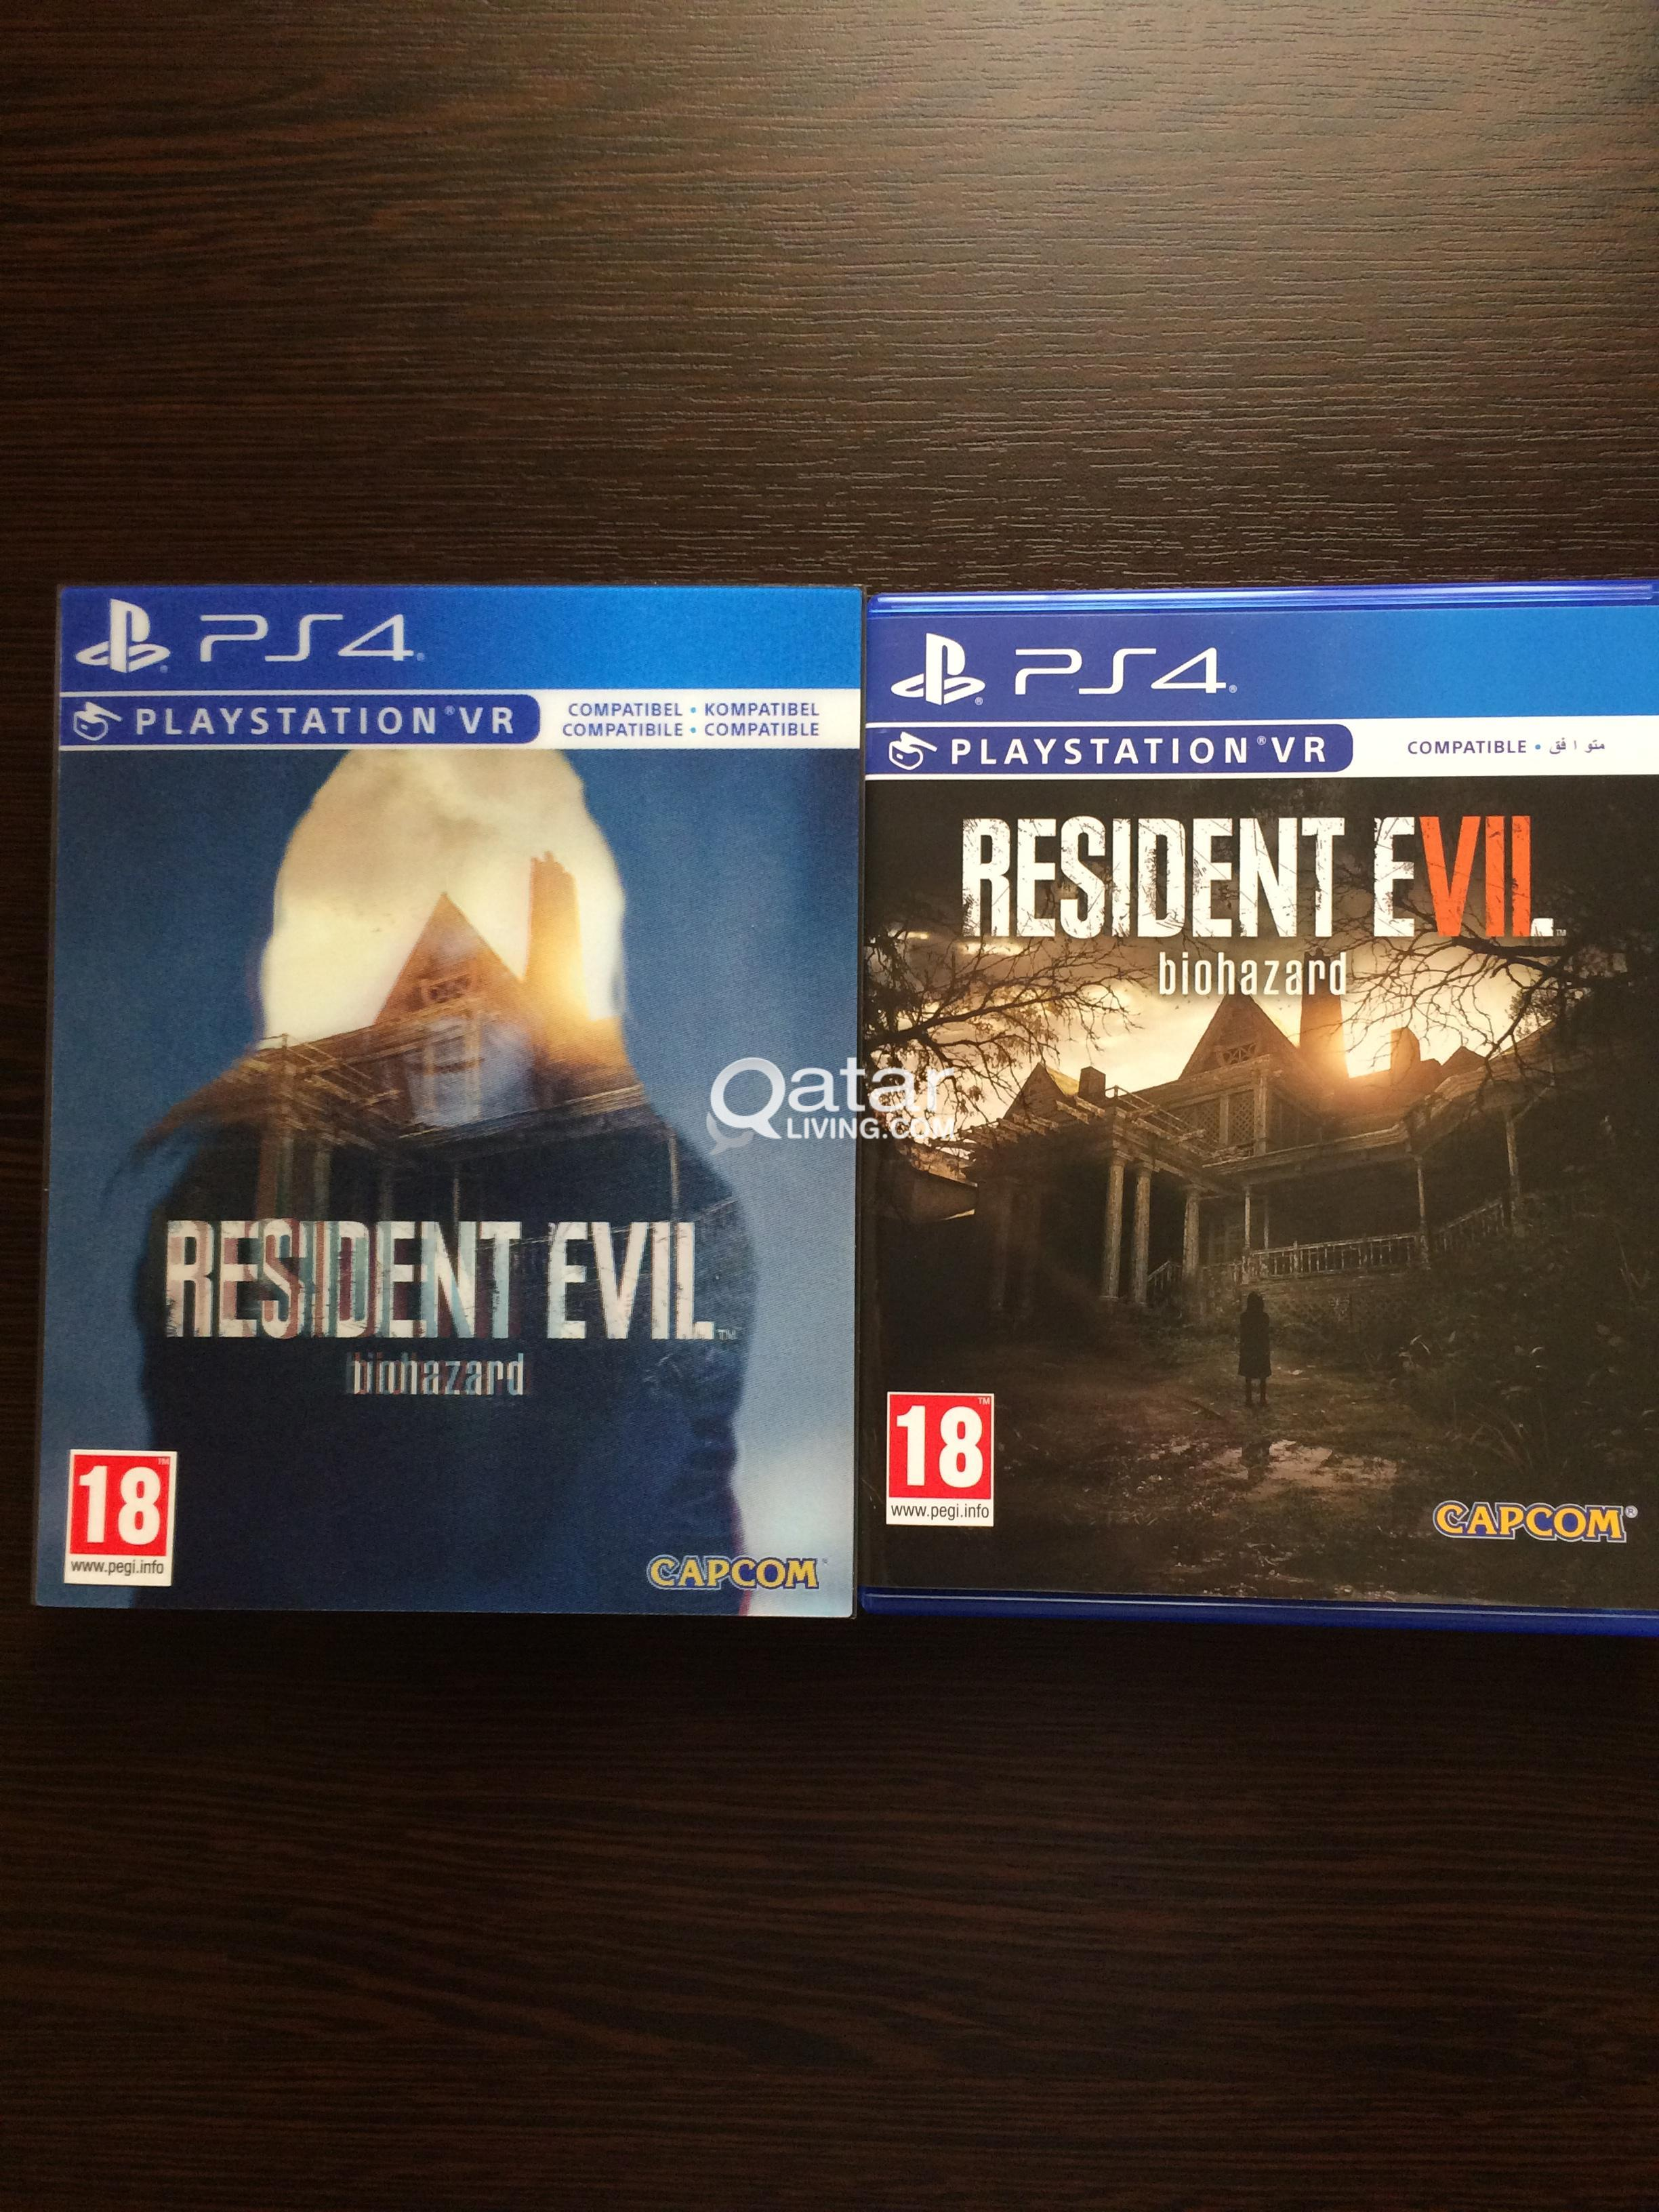 Resident Evil 7 Biohazard Ps4 Qatar Living Title Information 2017 Game For Ps